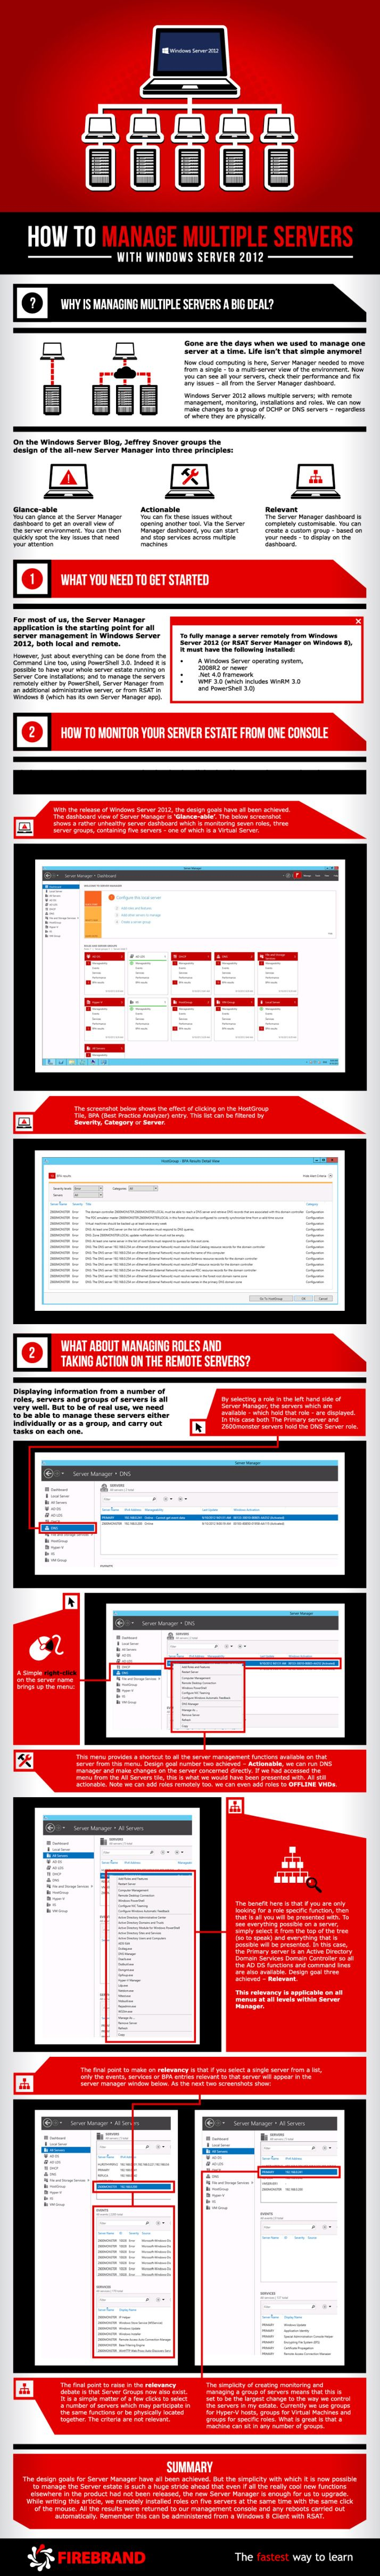 How to manage multiple servers with Windows Server 2012 #infografia #infographic #microsoft